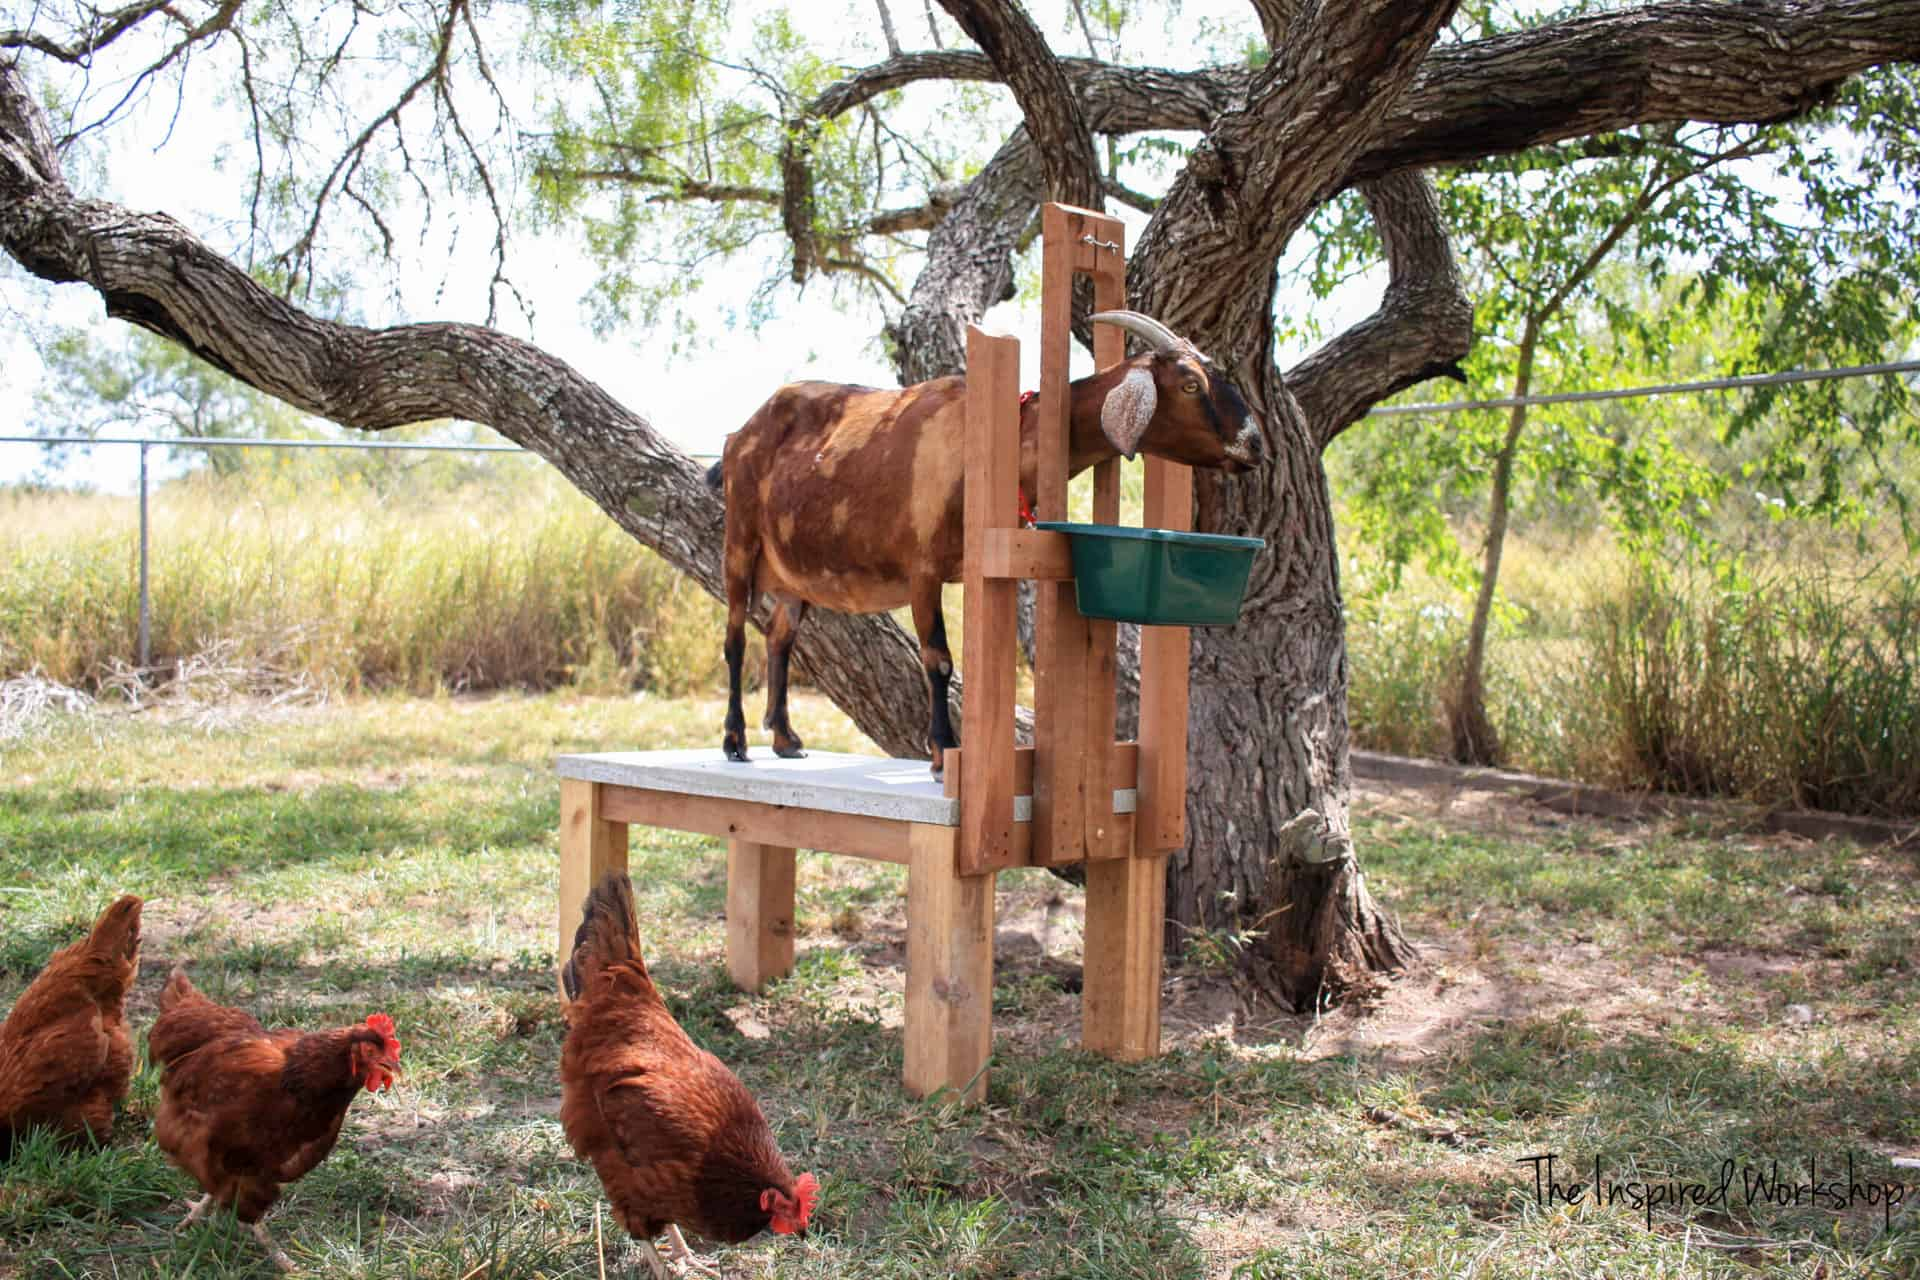 Milk stand for milking dairy goats with goat modeling how to use the milk stand